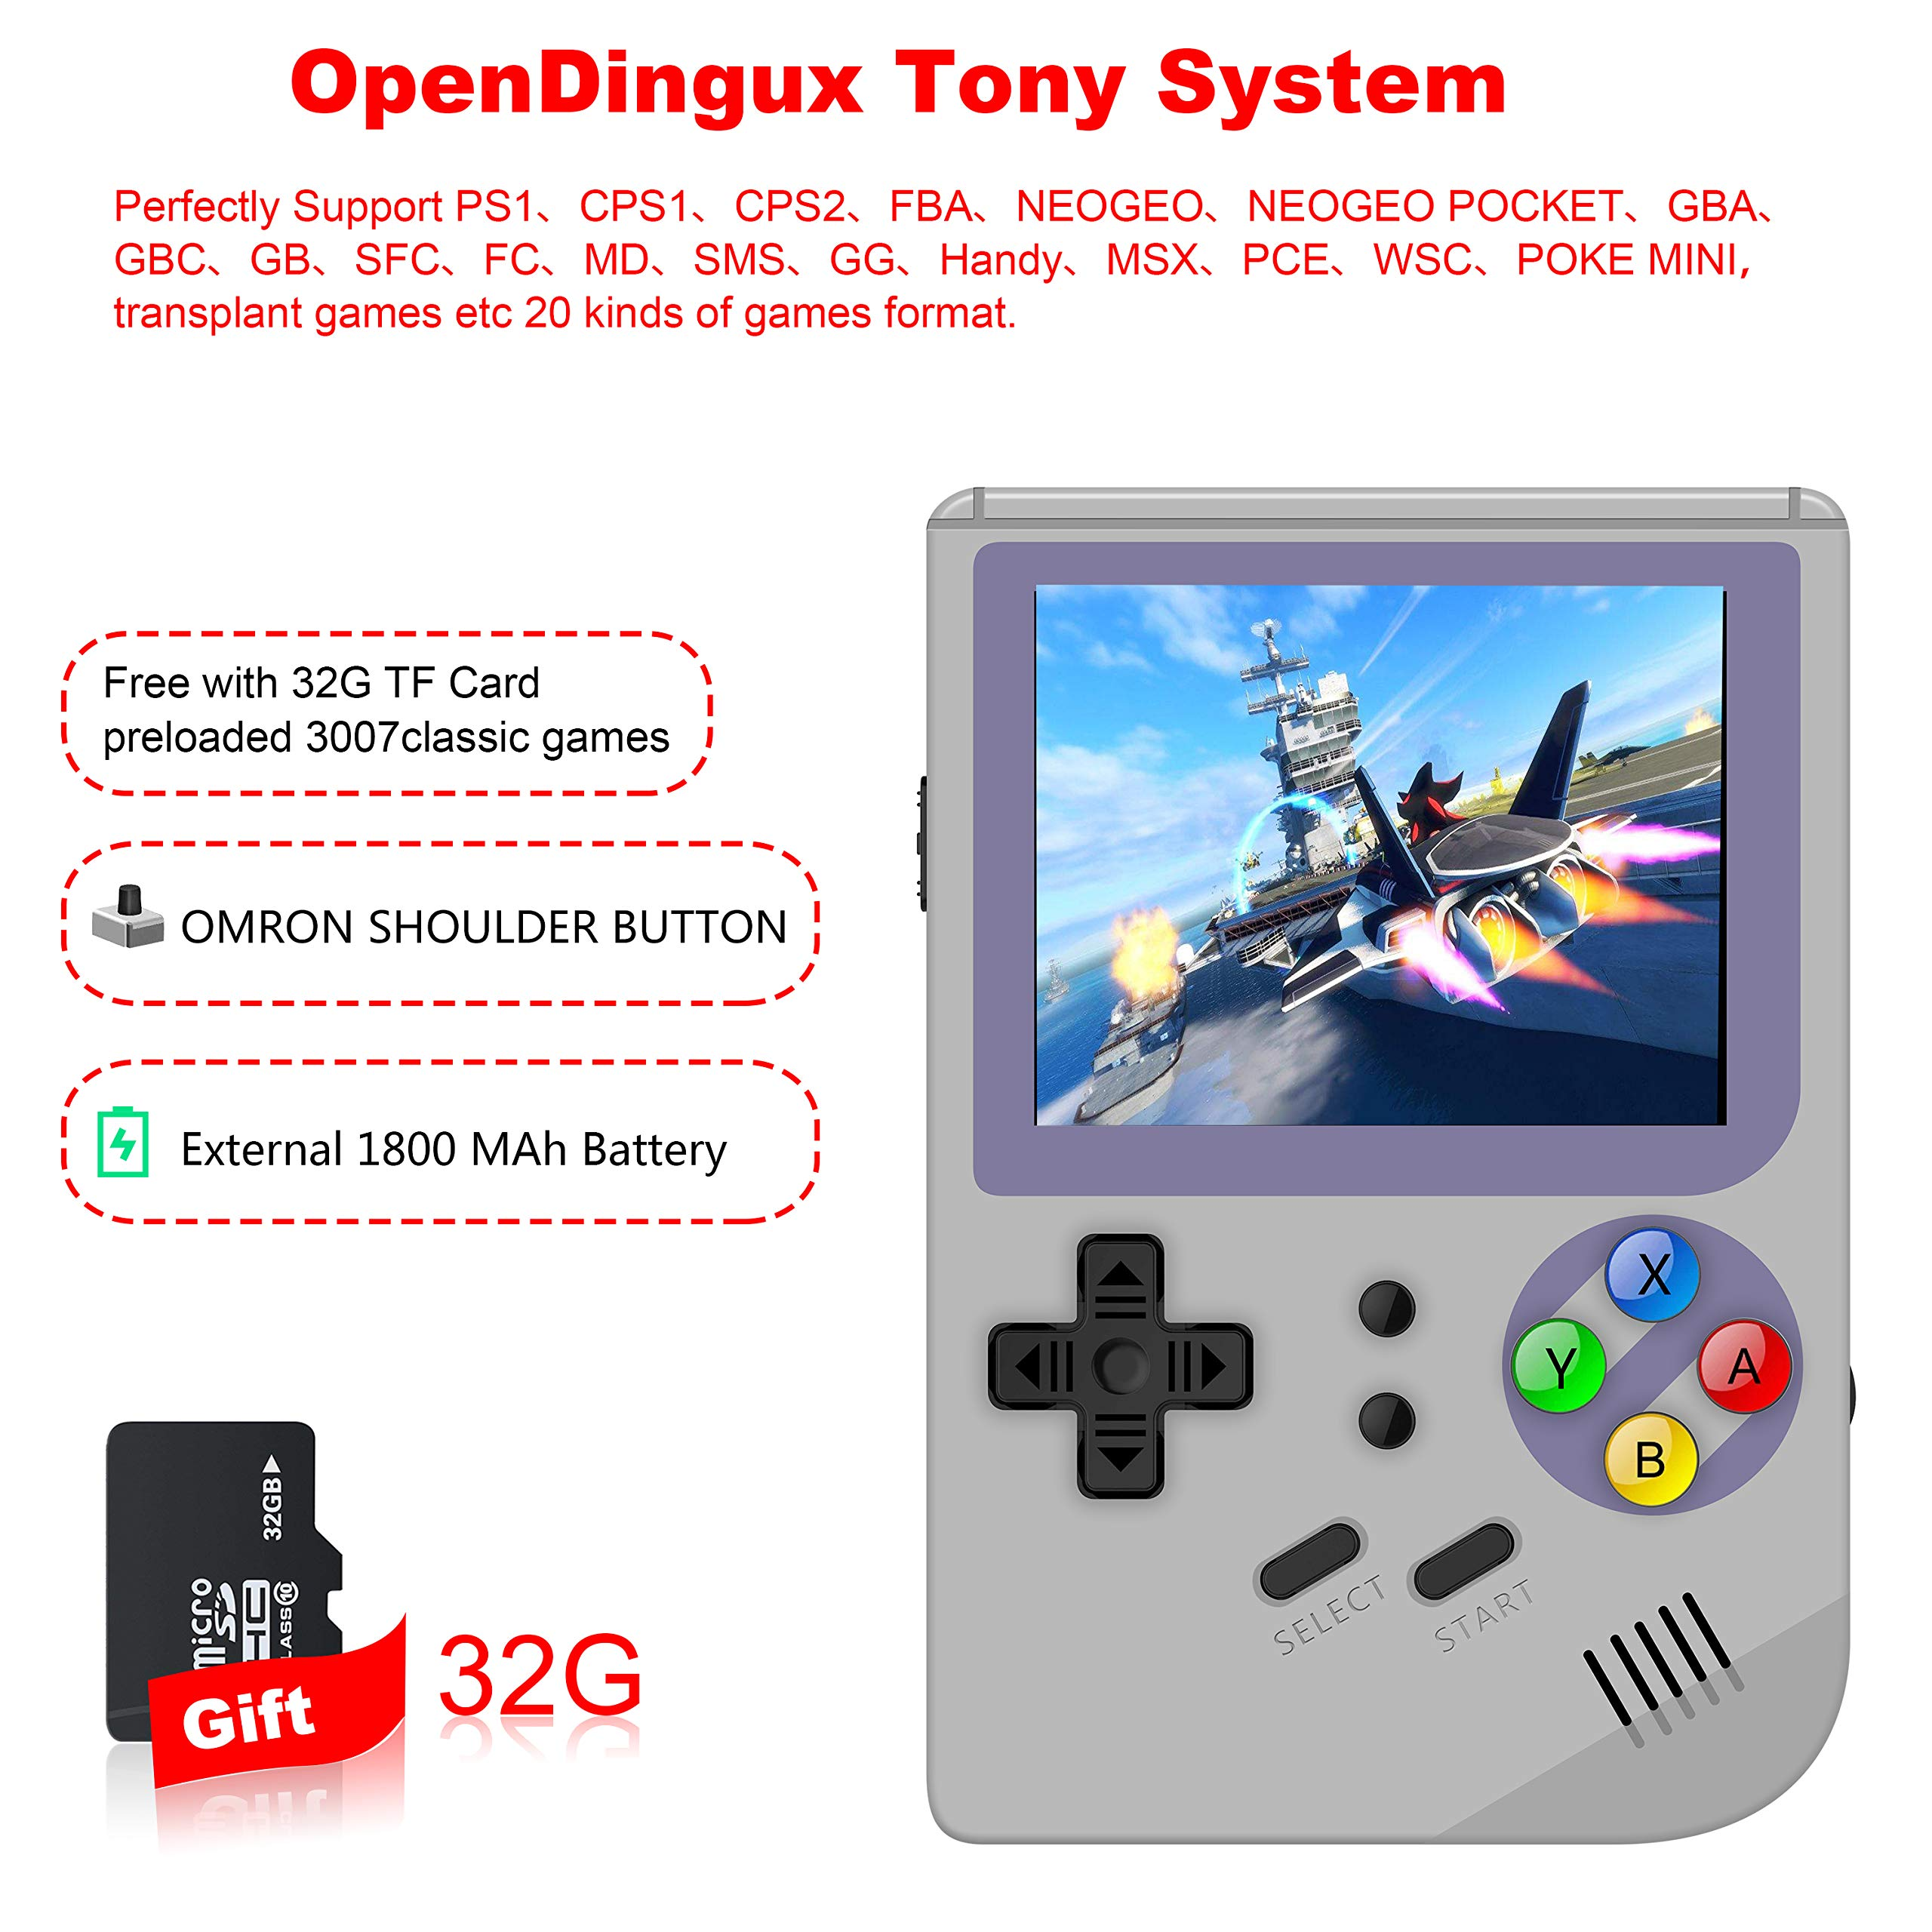 MJKJ Handheld Game Console ,RG300 Retro Game Console OpenDingux Tony System , Free with 32G TF Card Built-in 3007 Classic Game Console 3 Inch HD Screen Portable Video Game Console - Gray by MJKJ (Image #2)